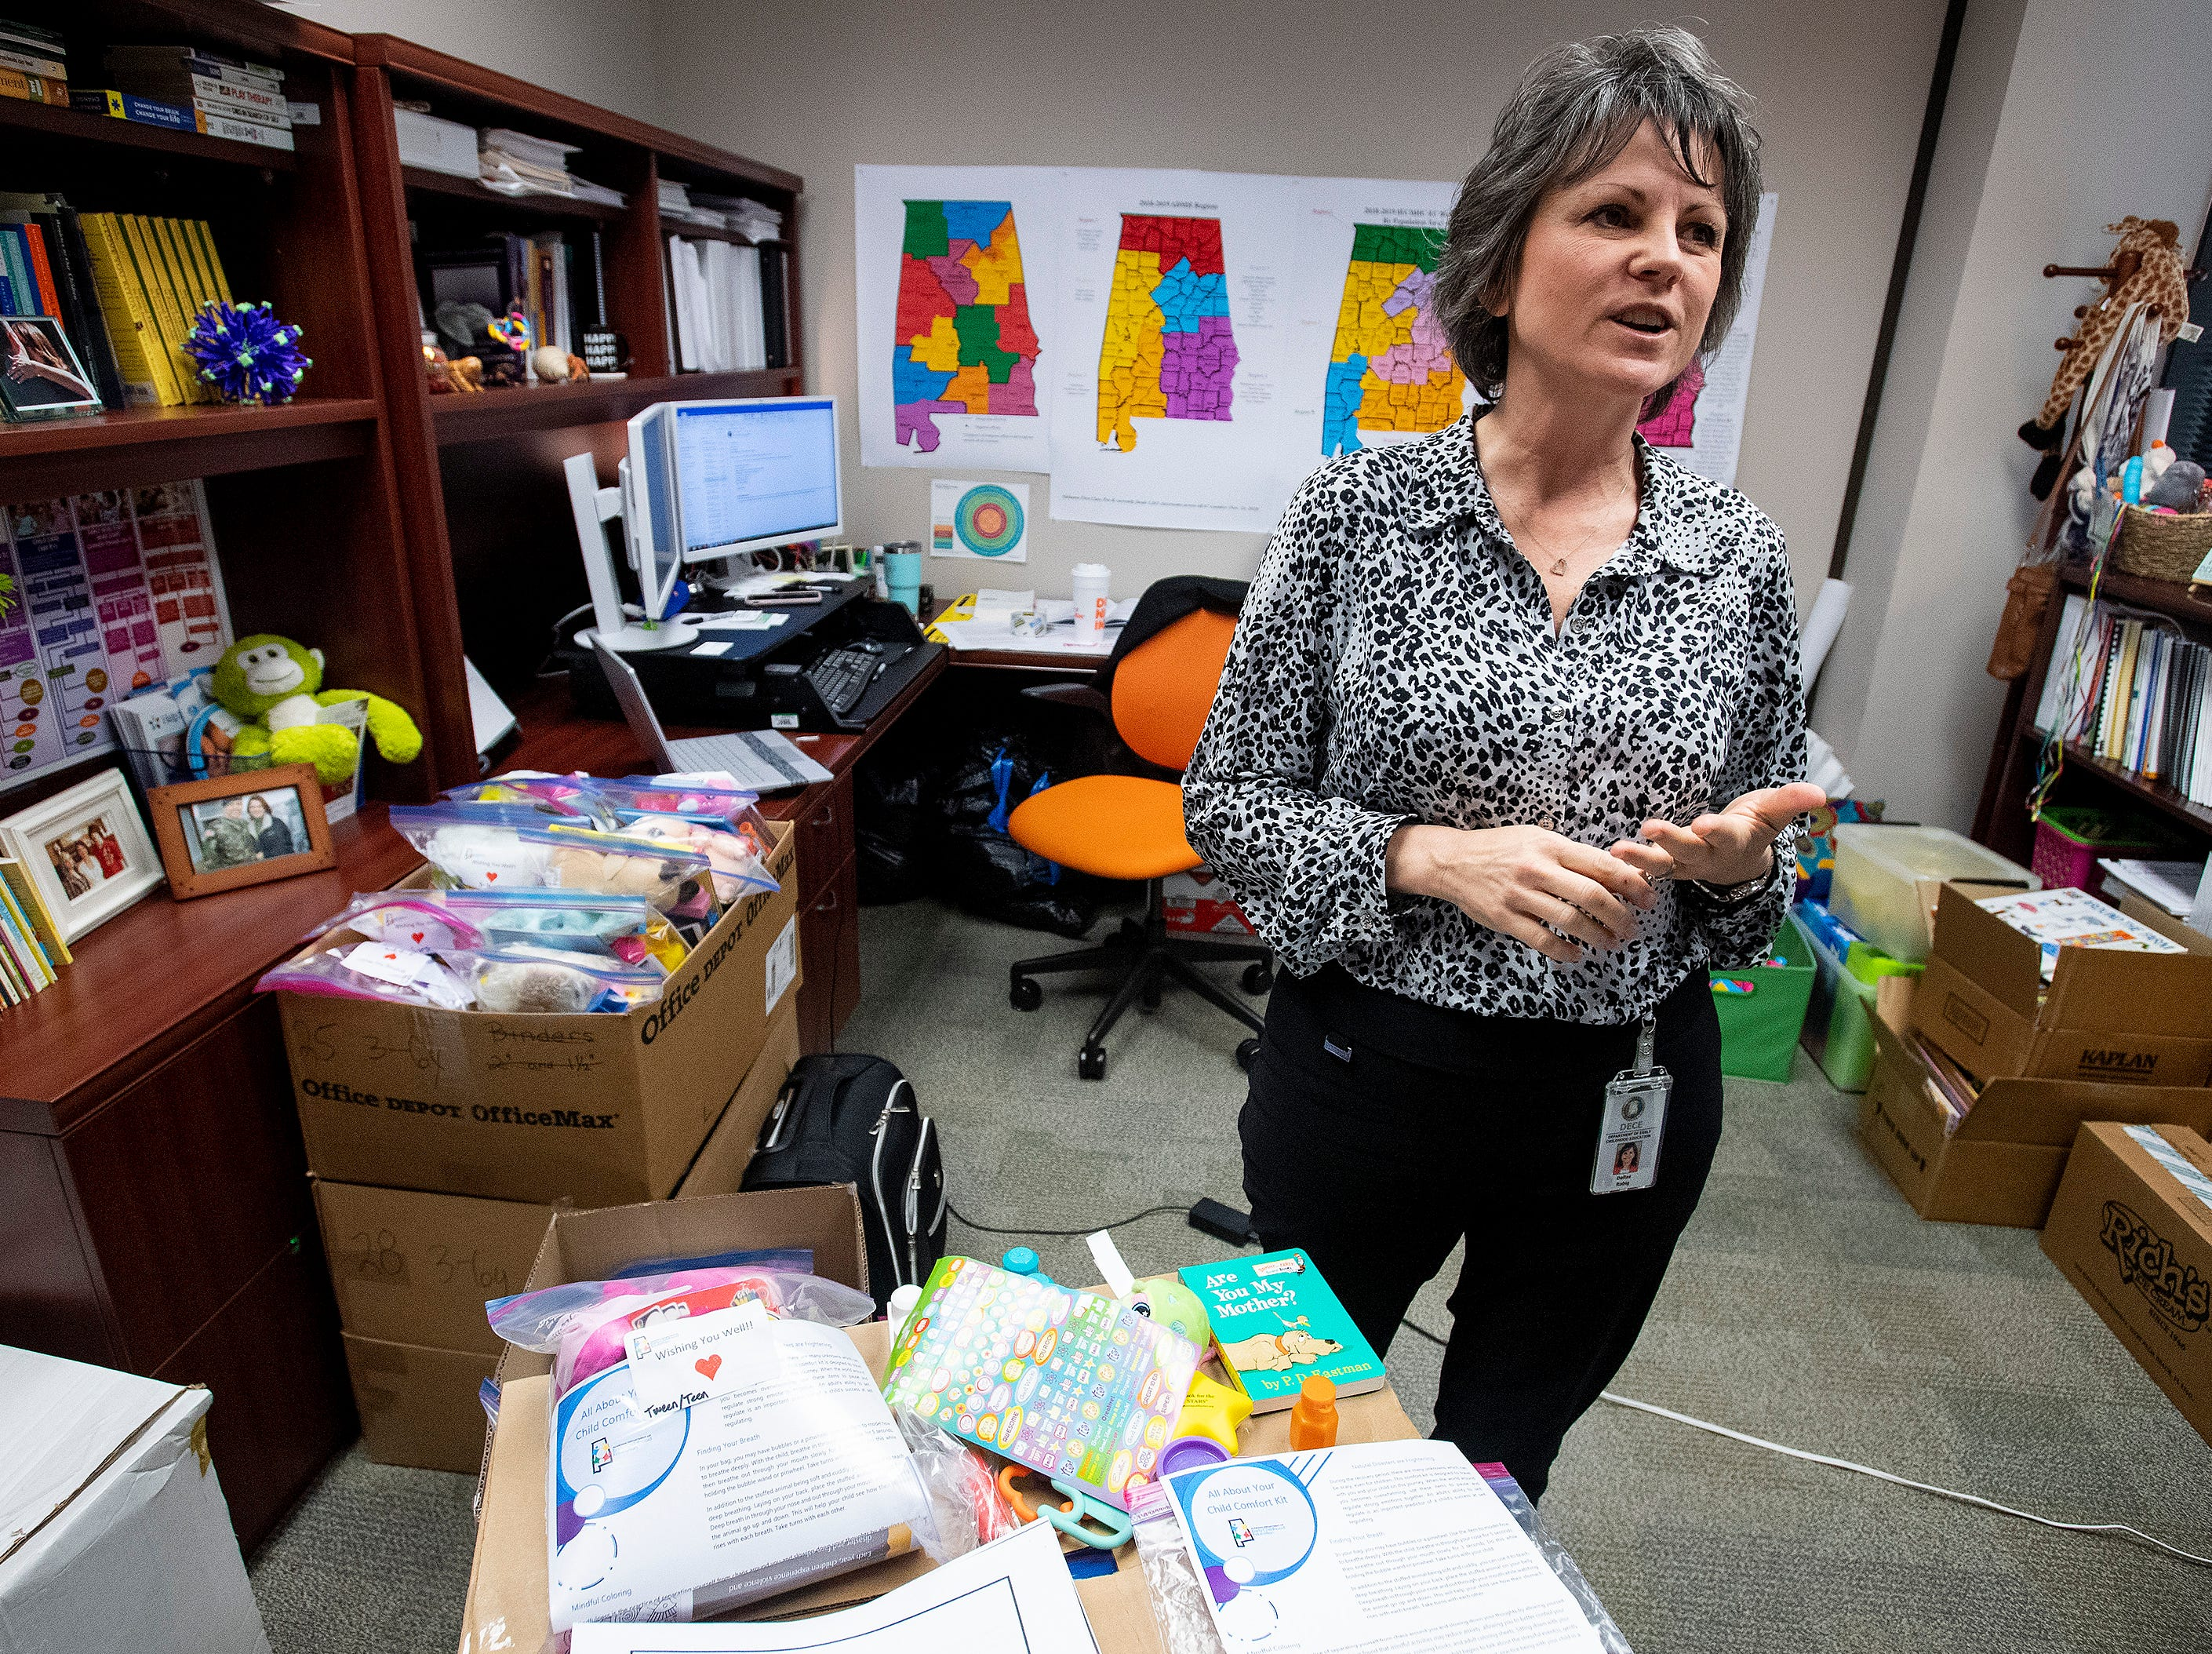 Dallas Rabig, of the Department of Early Childhood Education, discusses the child comfort kits being given to the Red Cross, on Wednesday March 13, 2019 in Montgomery, Ala., to be distributed to children in the wake of the Lee County tornados.